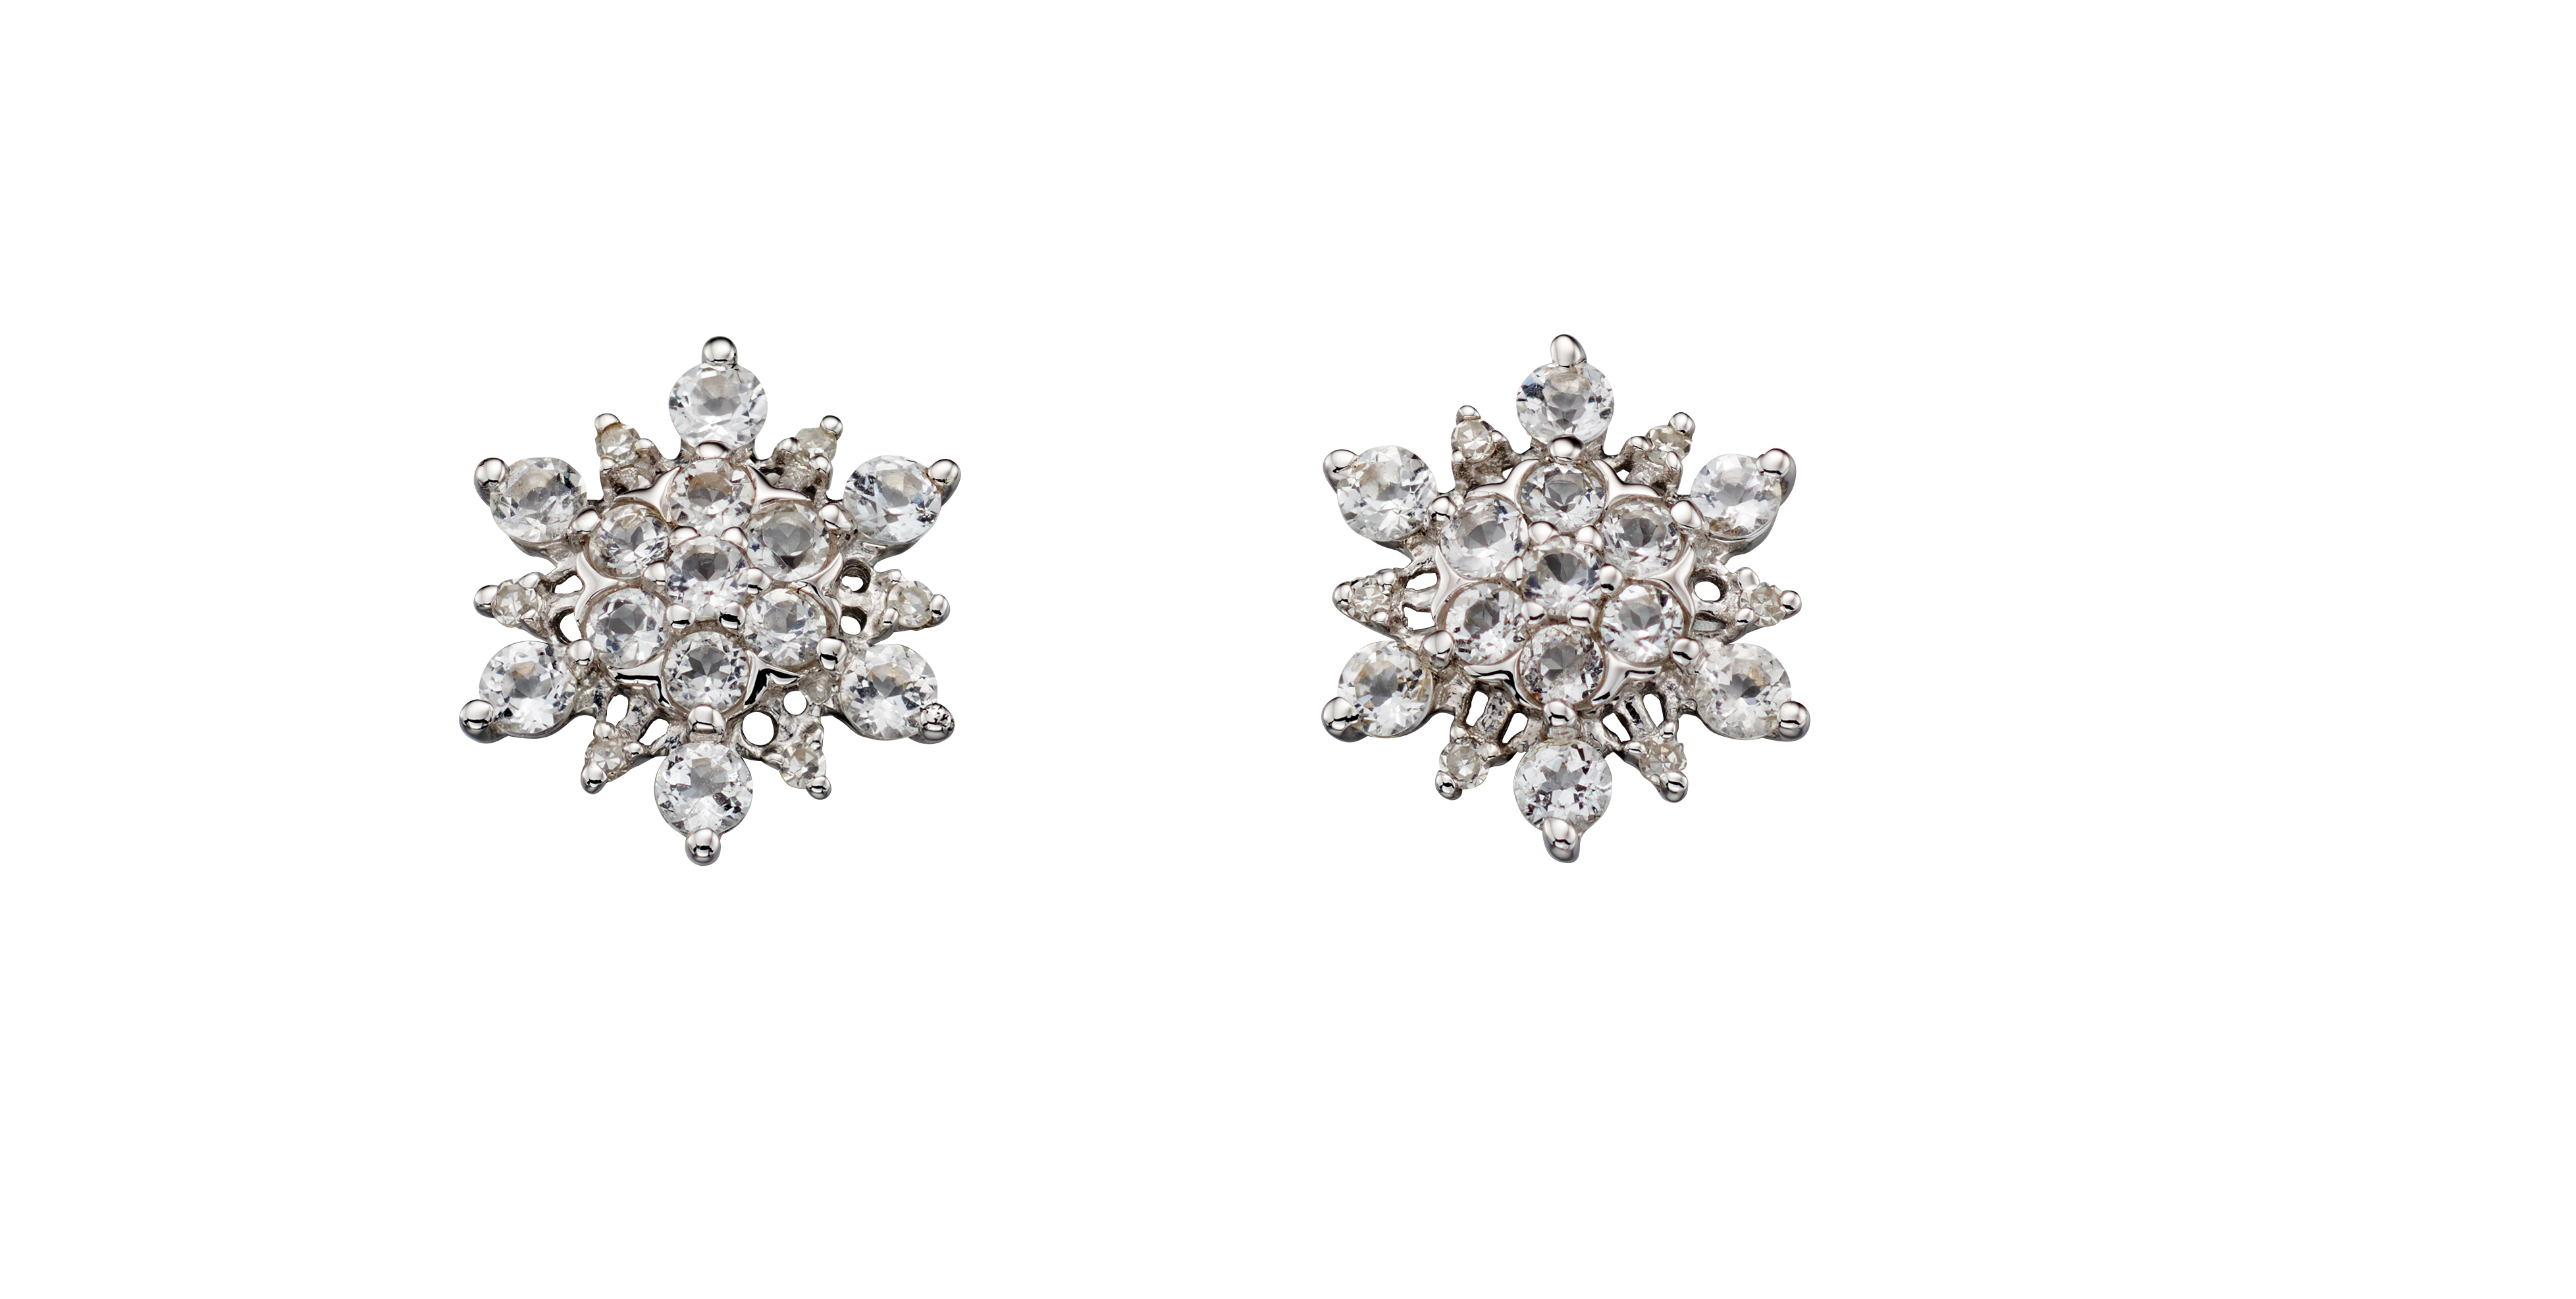 69332 - White Topaz Star shaped stone set Cluster Stud Earrings in 9ct White Gold